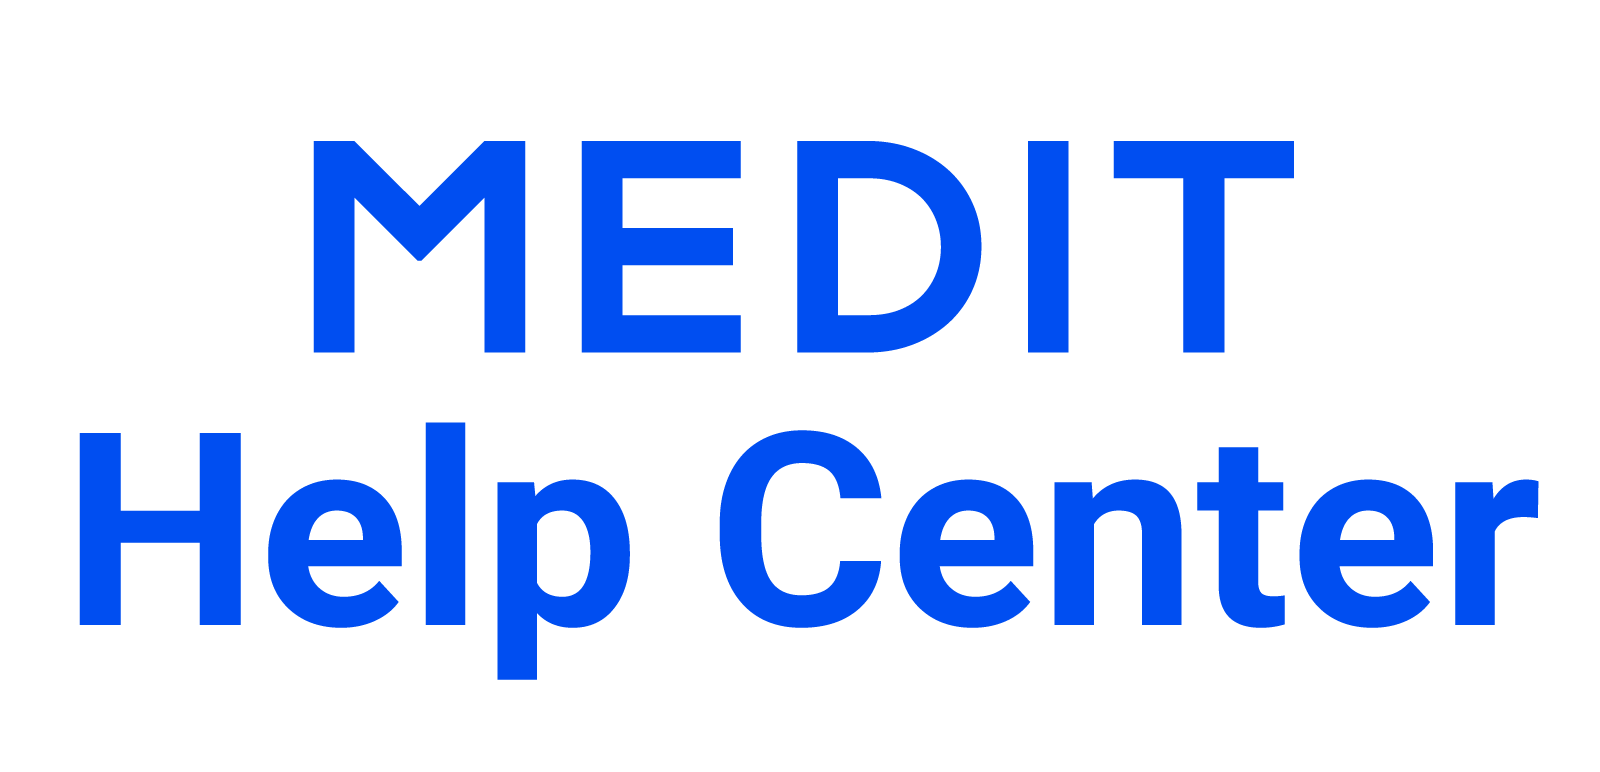 Medit Help Center Help Center home page